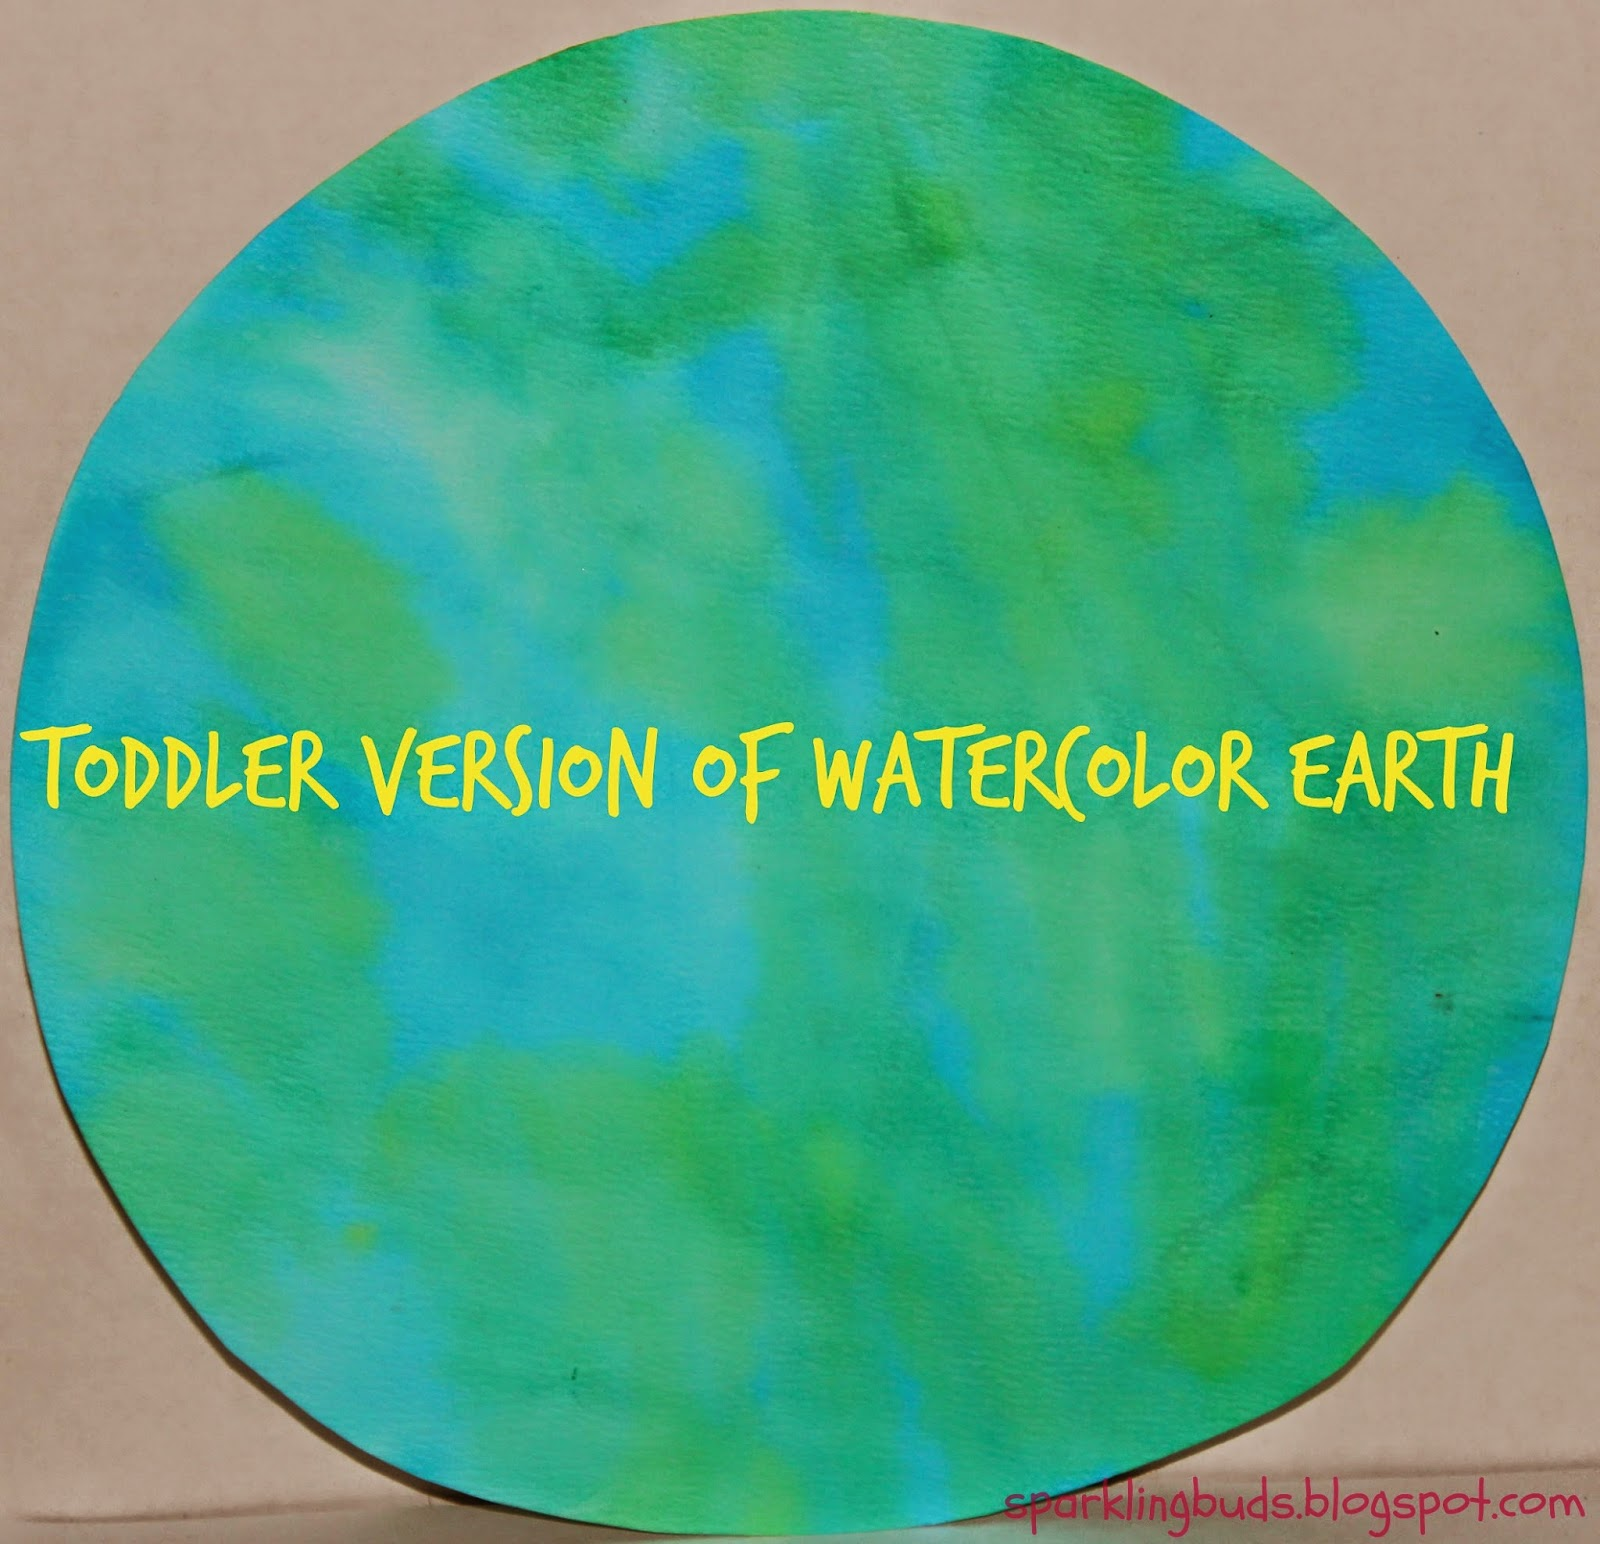 Toddler version of watercolor Earth - sparklingbuds